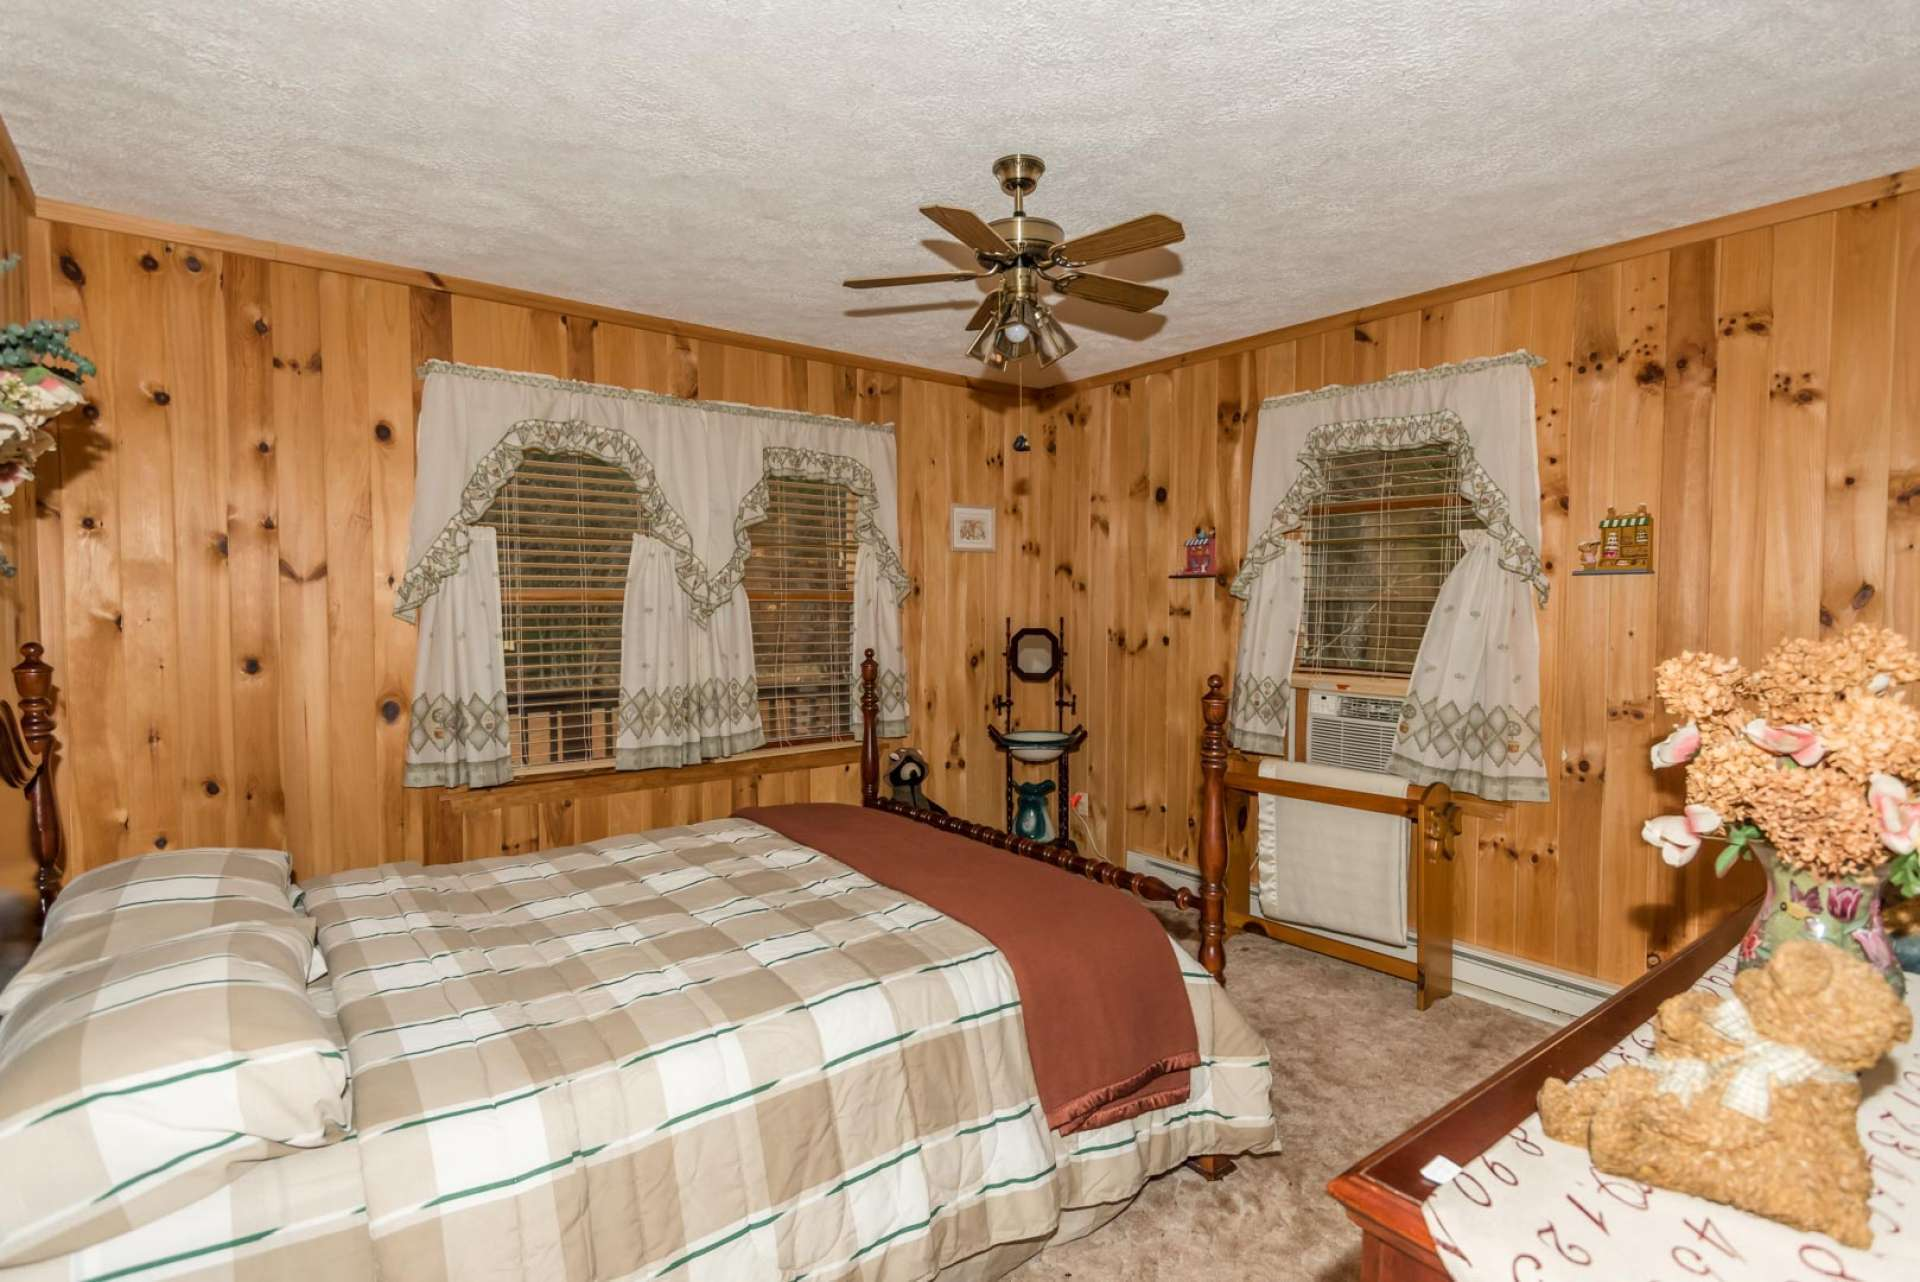 This is the main level bedroom, charming with comfortable carpeted floor. A full bath completes the main level floor plan.